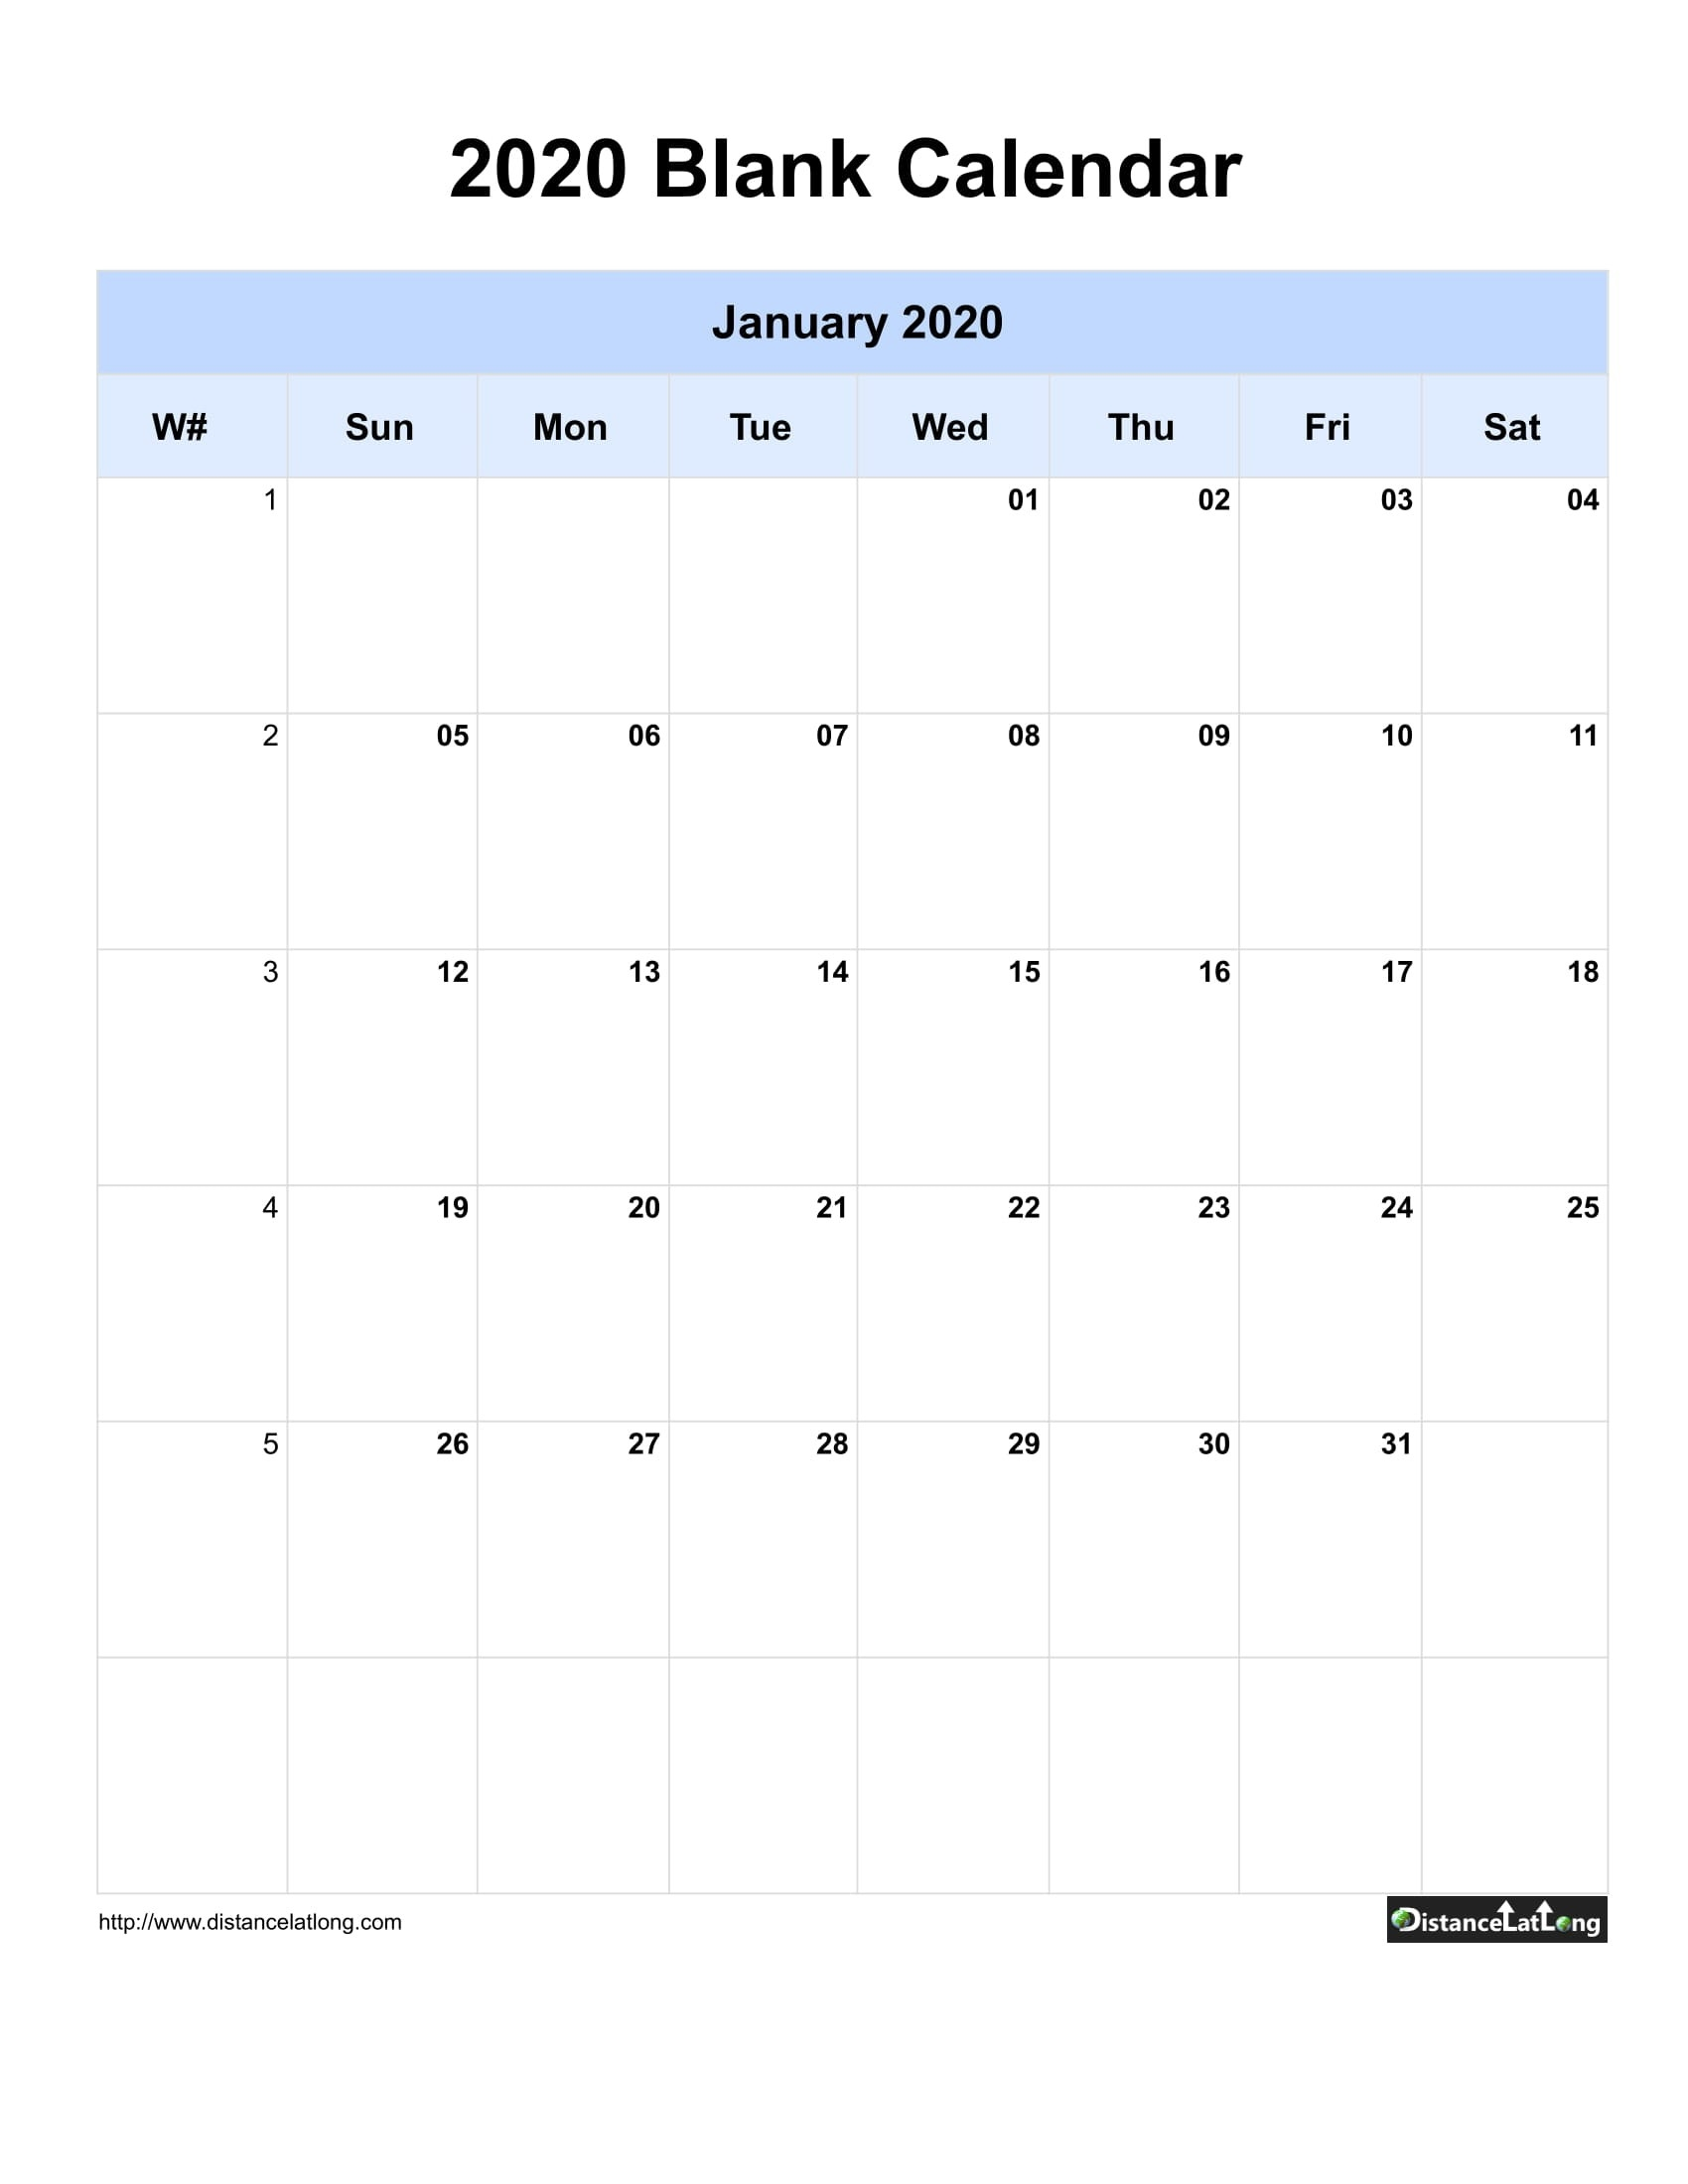 2020 Blank Calendar Blank Portrait Orientation Free  Download 2020 Blank Calendar Printable